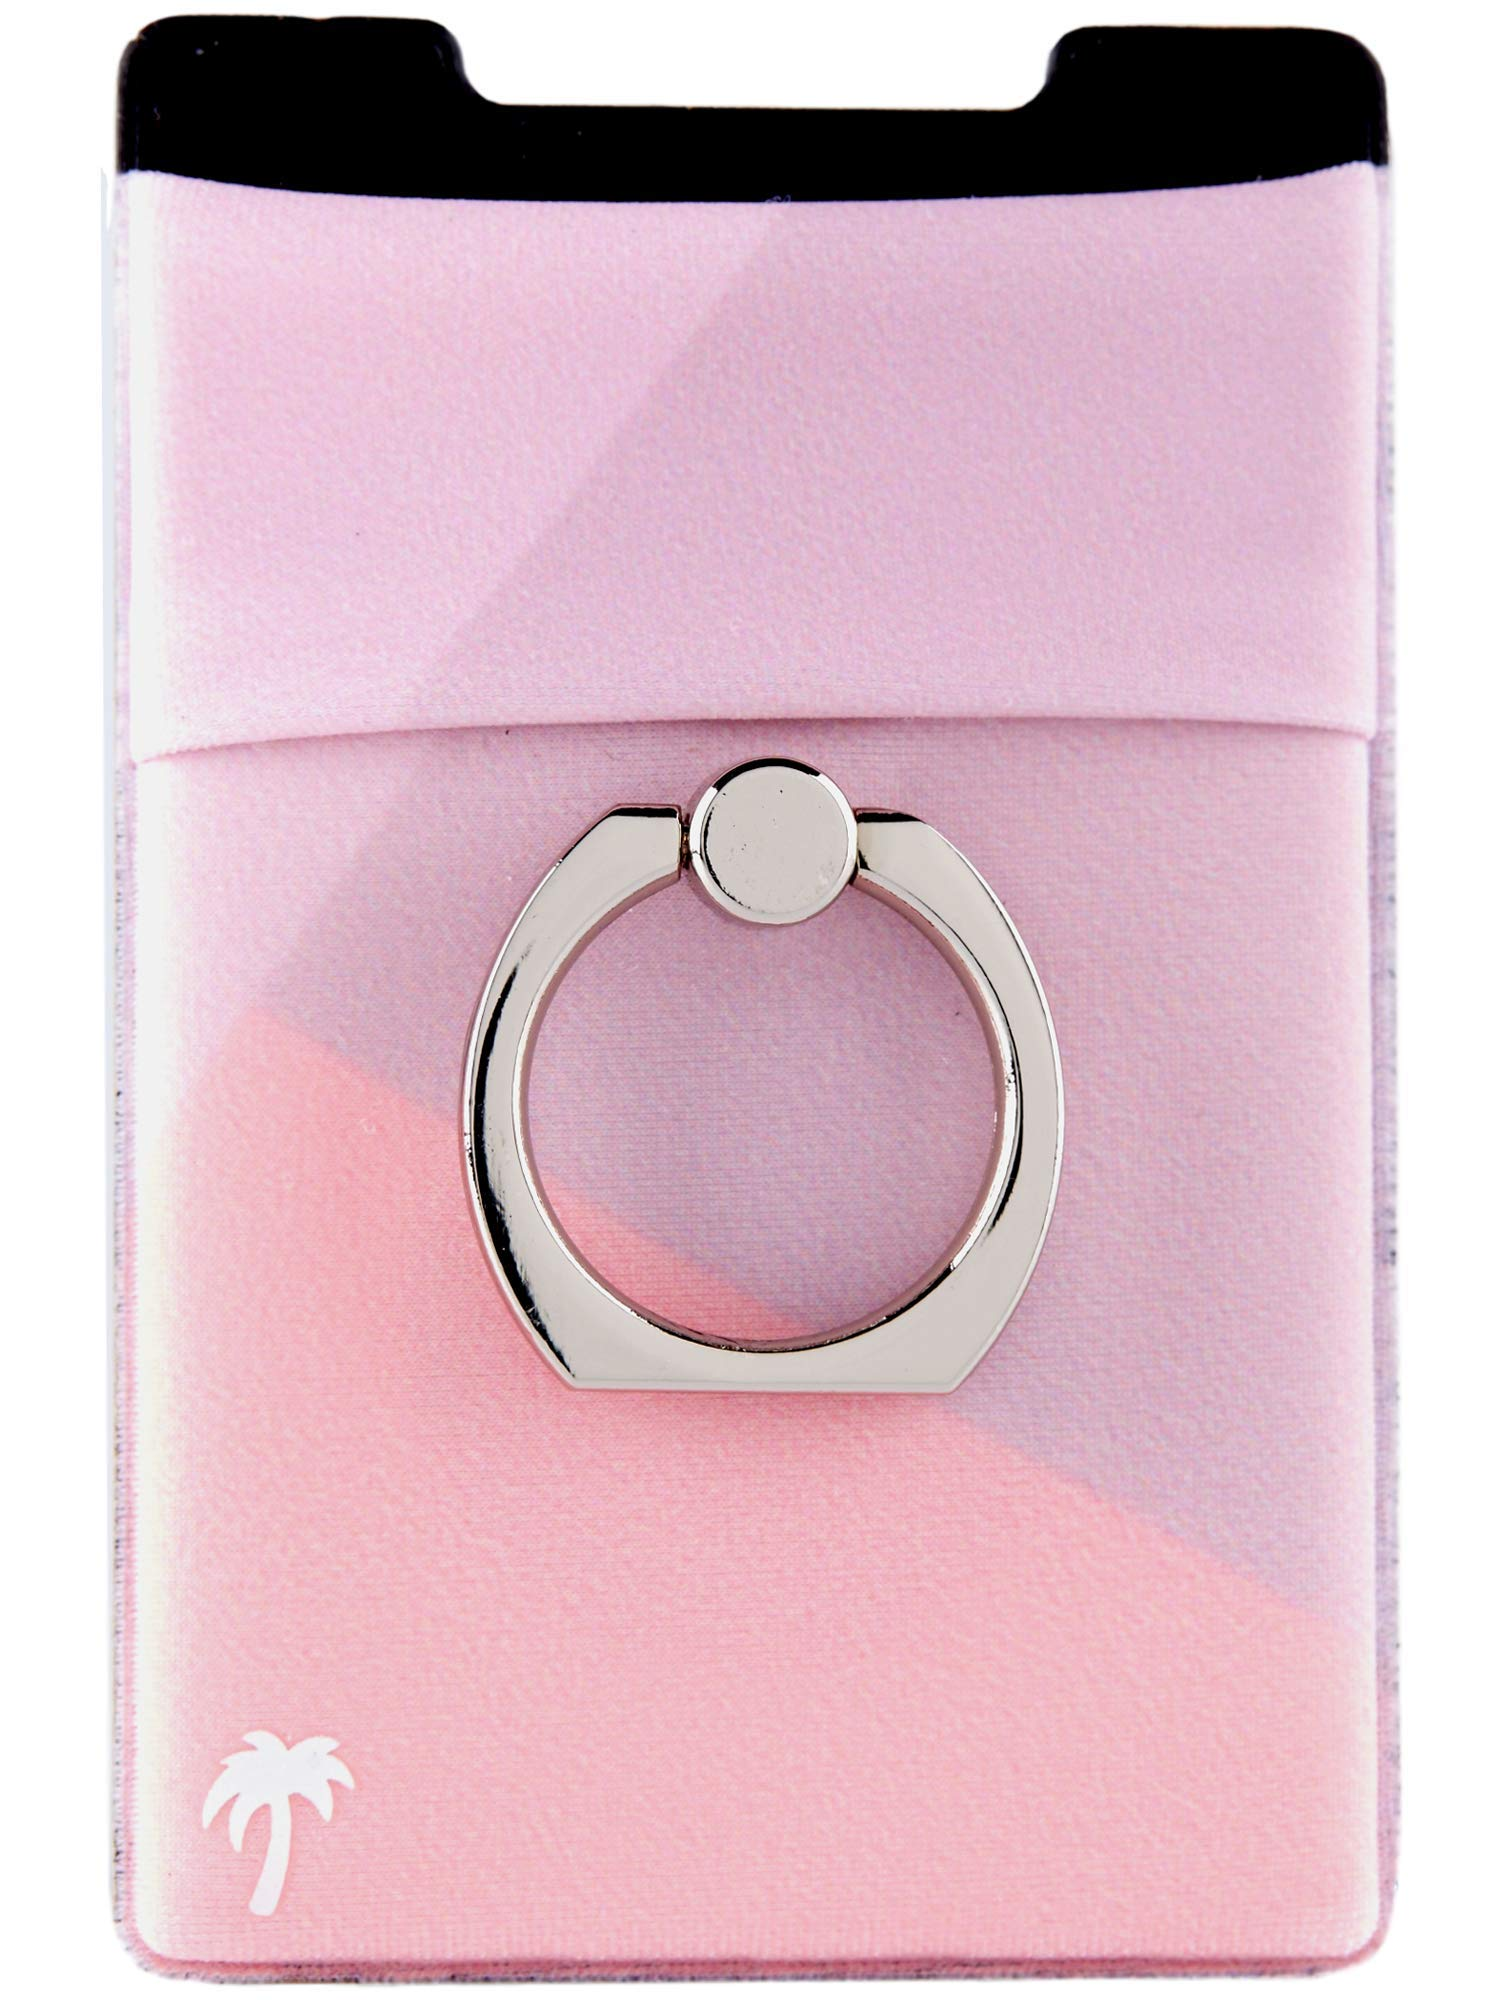 The StickyWallet +Ring – NEW 4-in-1 Spandex Stick-on Wallet for any Phone + Kickstand Ring – Best Card Holder Sticker for Case: iPhone 11, Pro, Max, XR XS X etc.) (Rose Tri-Tone w/ Silver Ring)